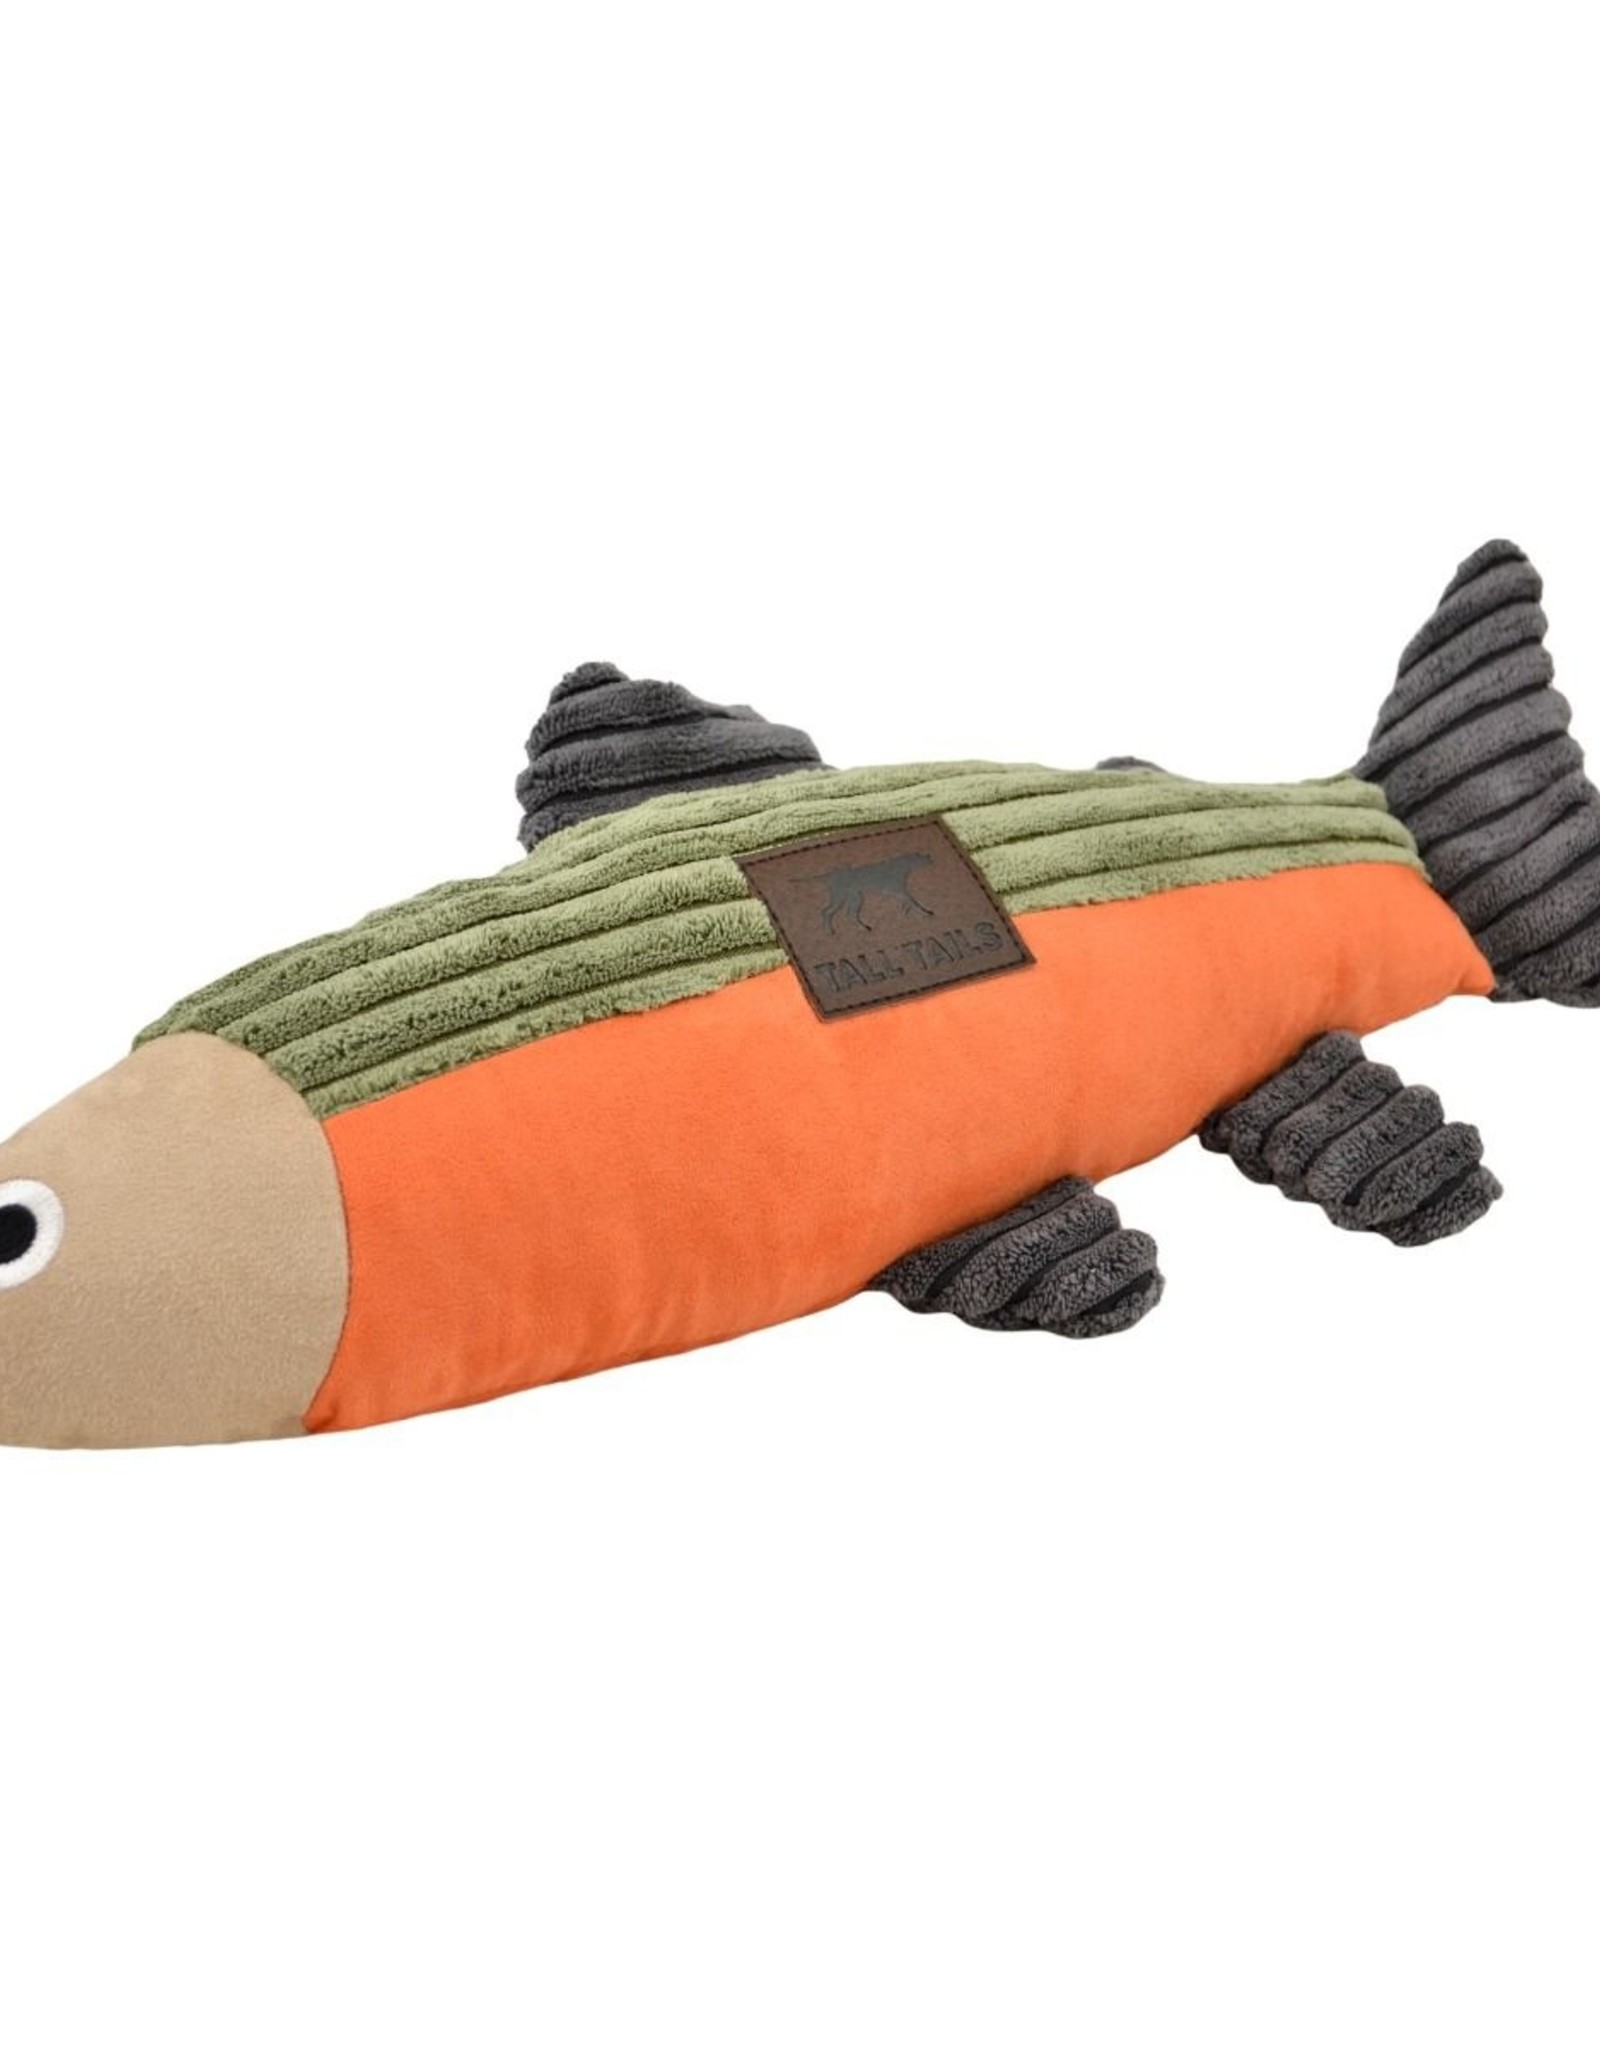 Tall Tails Tall Tails Plush Fish with Squeaker S